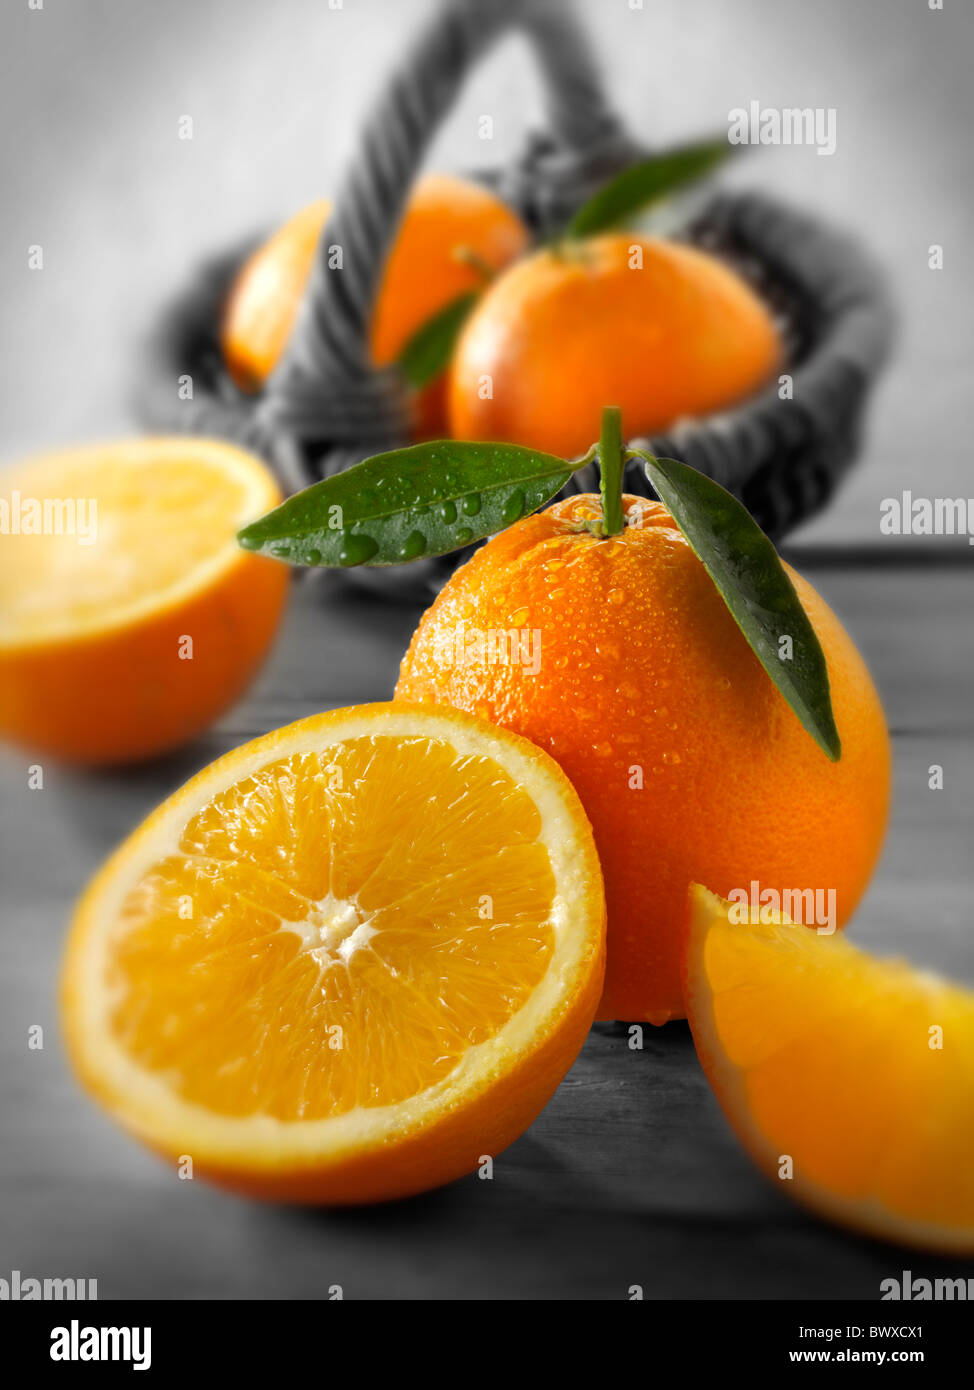 Fresh oranges whole and cut halves with leaves in a kitchen setting Stock Photo